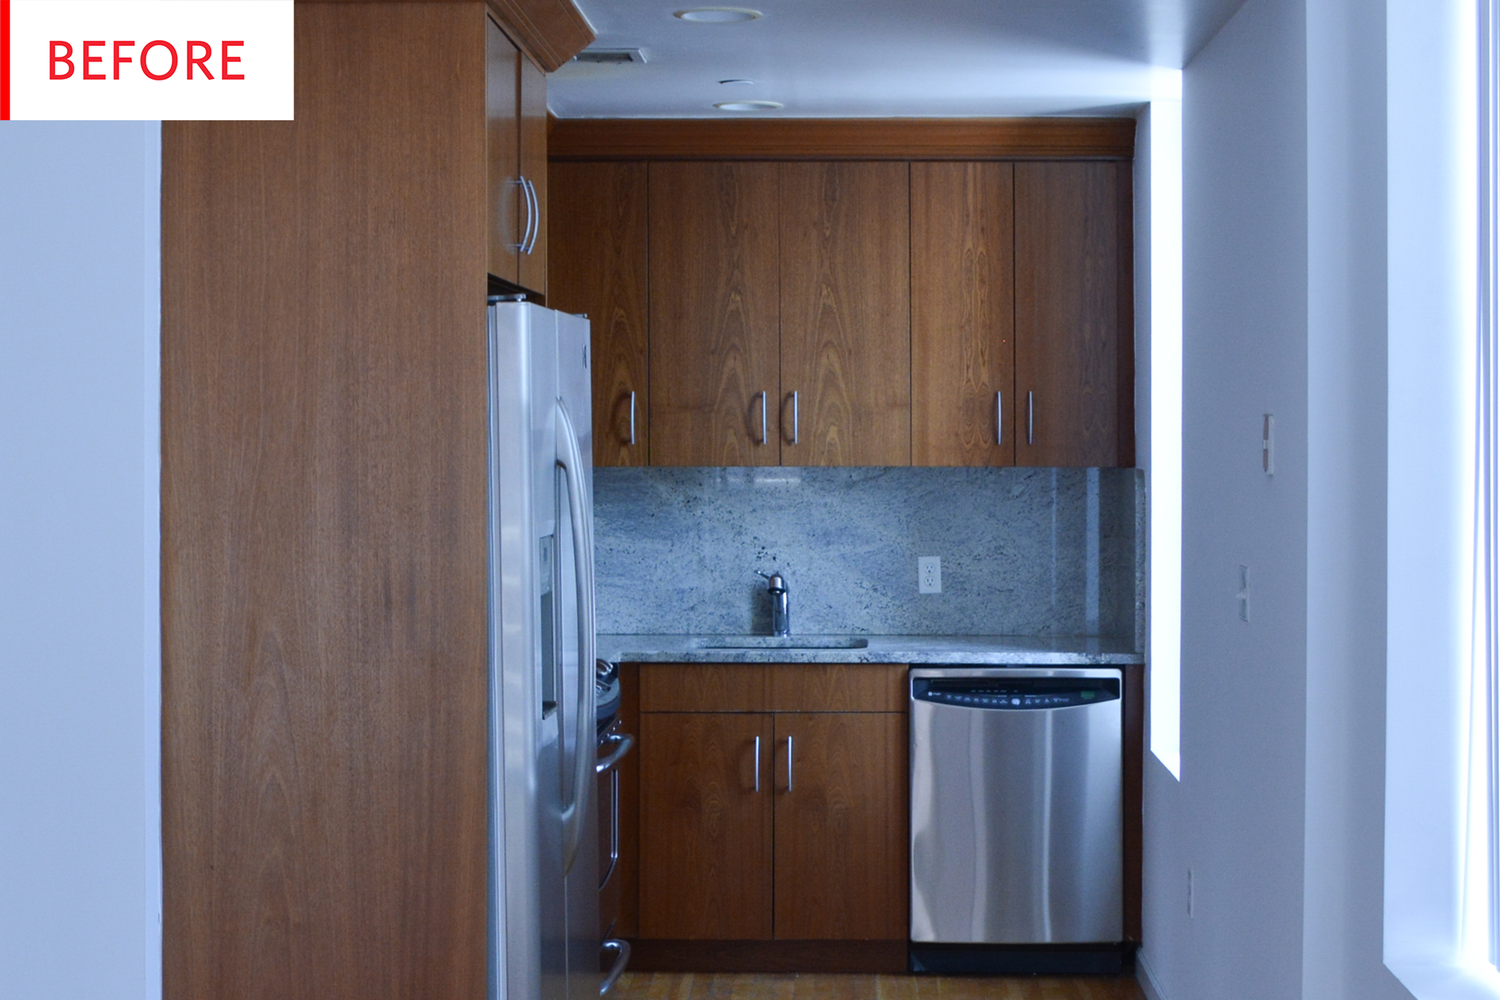 Basic kitchen cabinets  Before and After A Basic Kitchen Says Goodbye to Boring  Kitchens